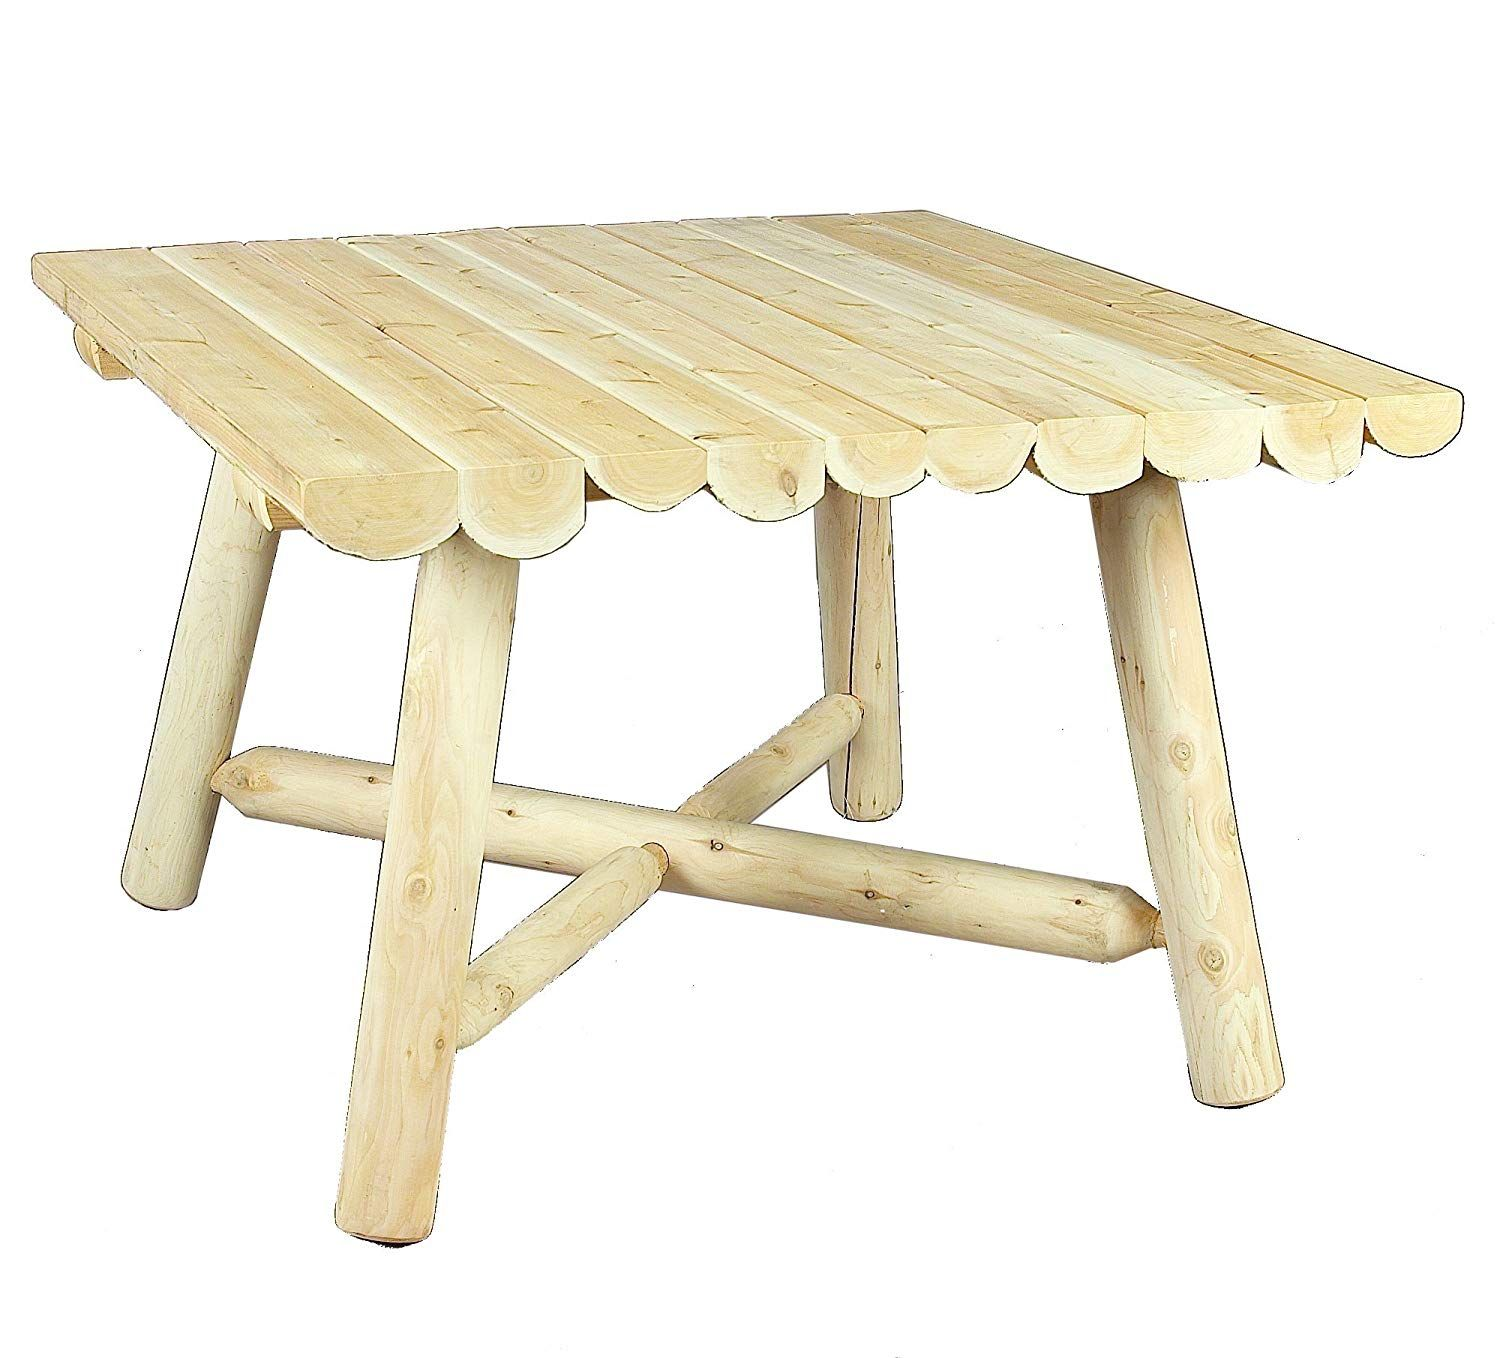 Cedarlooks 1100130 Log Square Dining Table 42 Inch Square